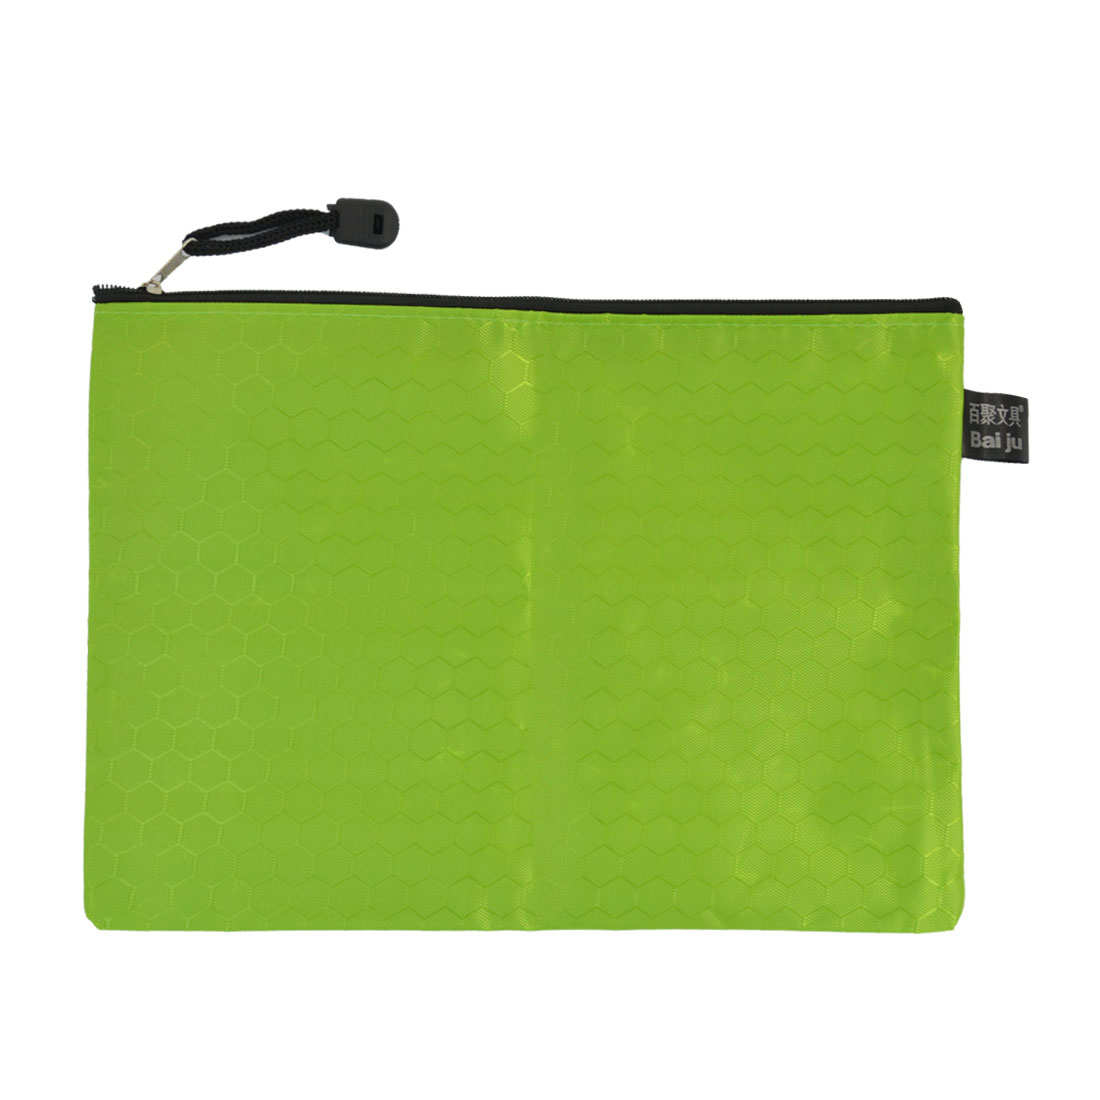 Zipper Closure Hexagon Pattern A5 Paper Files Document Organizer Bag Green